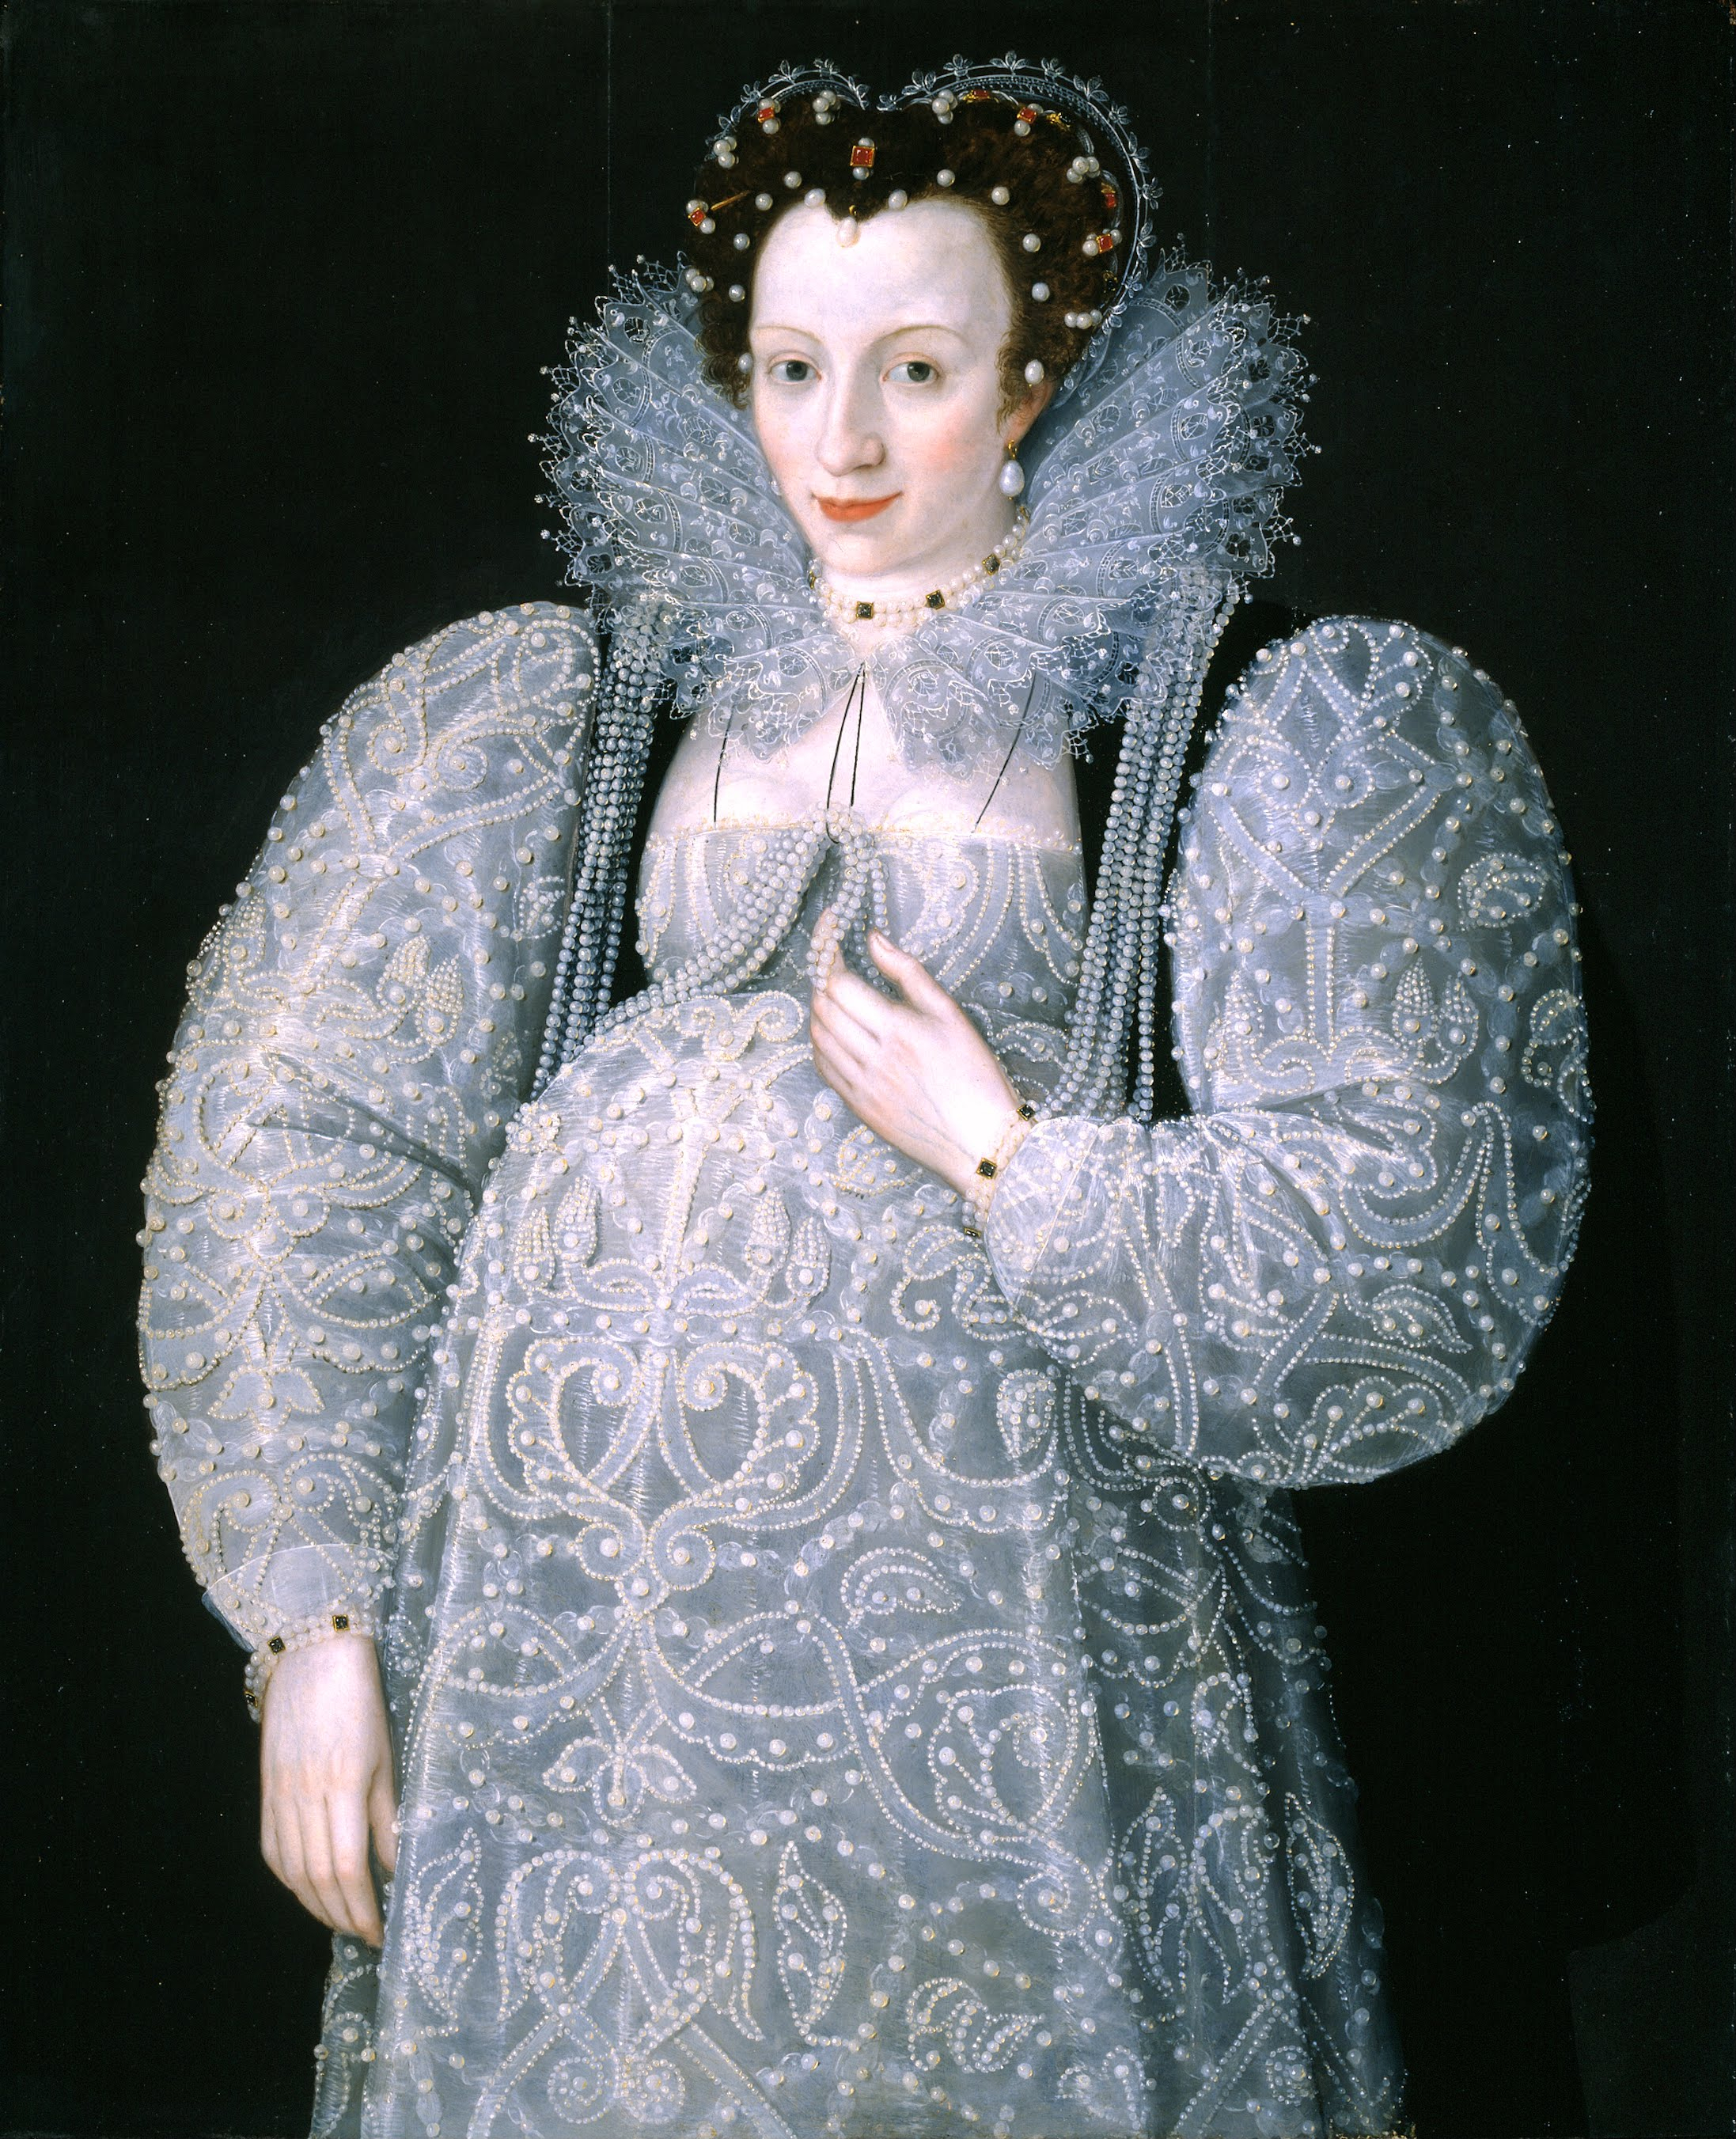 Maternity clothing wikipedia a waistless maternity dress fits a pregnant woman in late 16th century elizabethan england ombrellifo Image collections